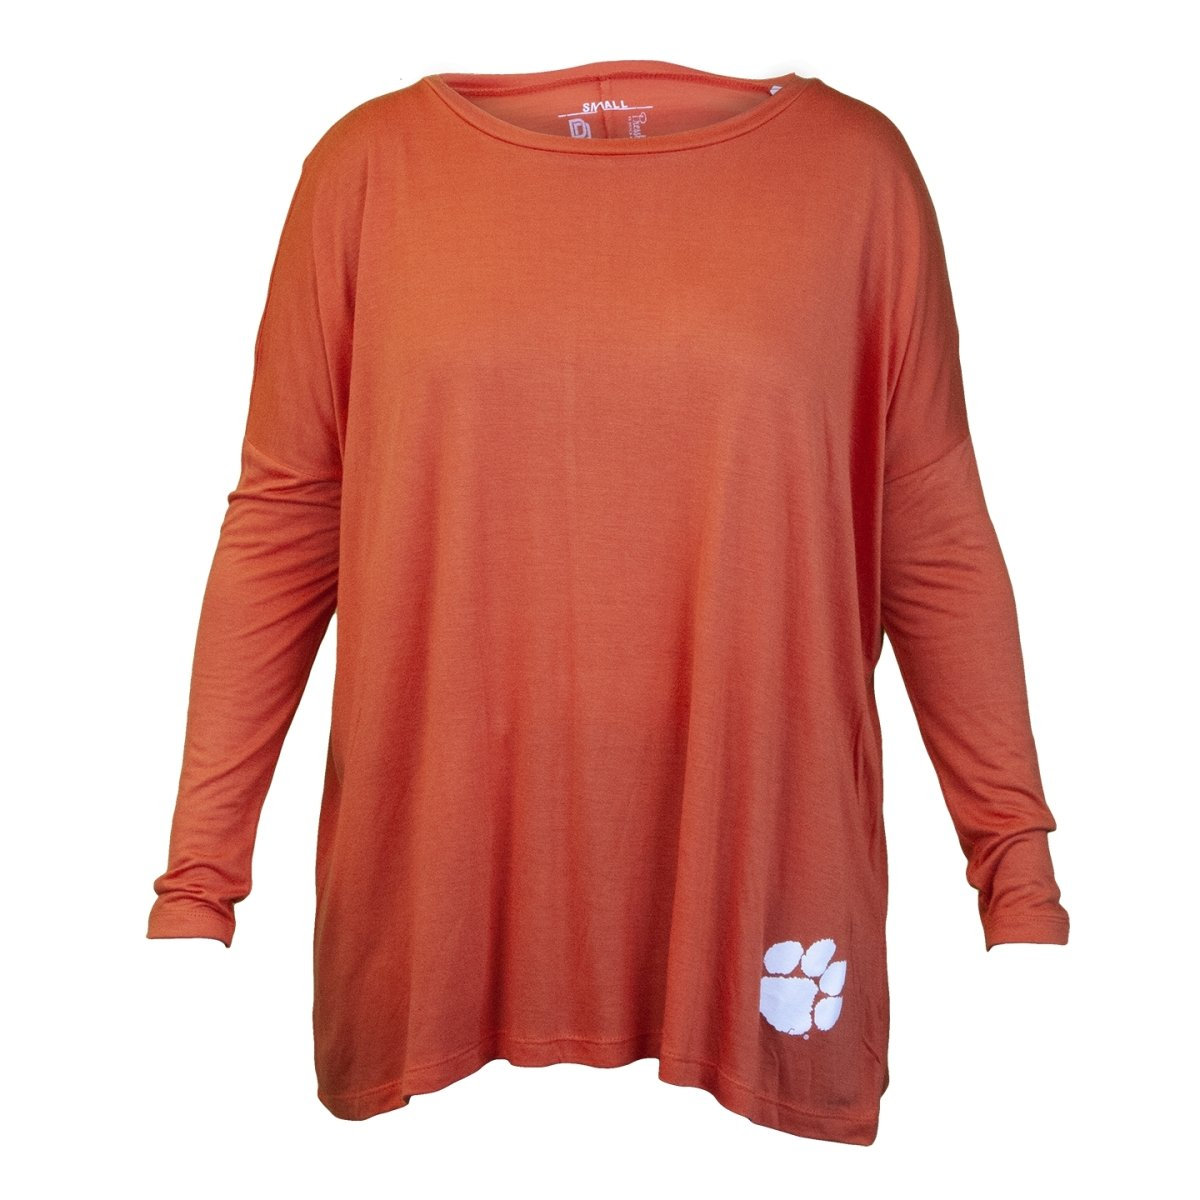 Ladies Long Sleeve Modal Campus Crush Tee With White Paw - Mr. Knickerbocker